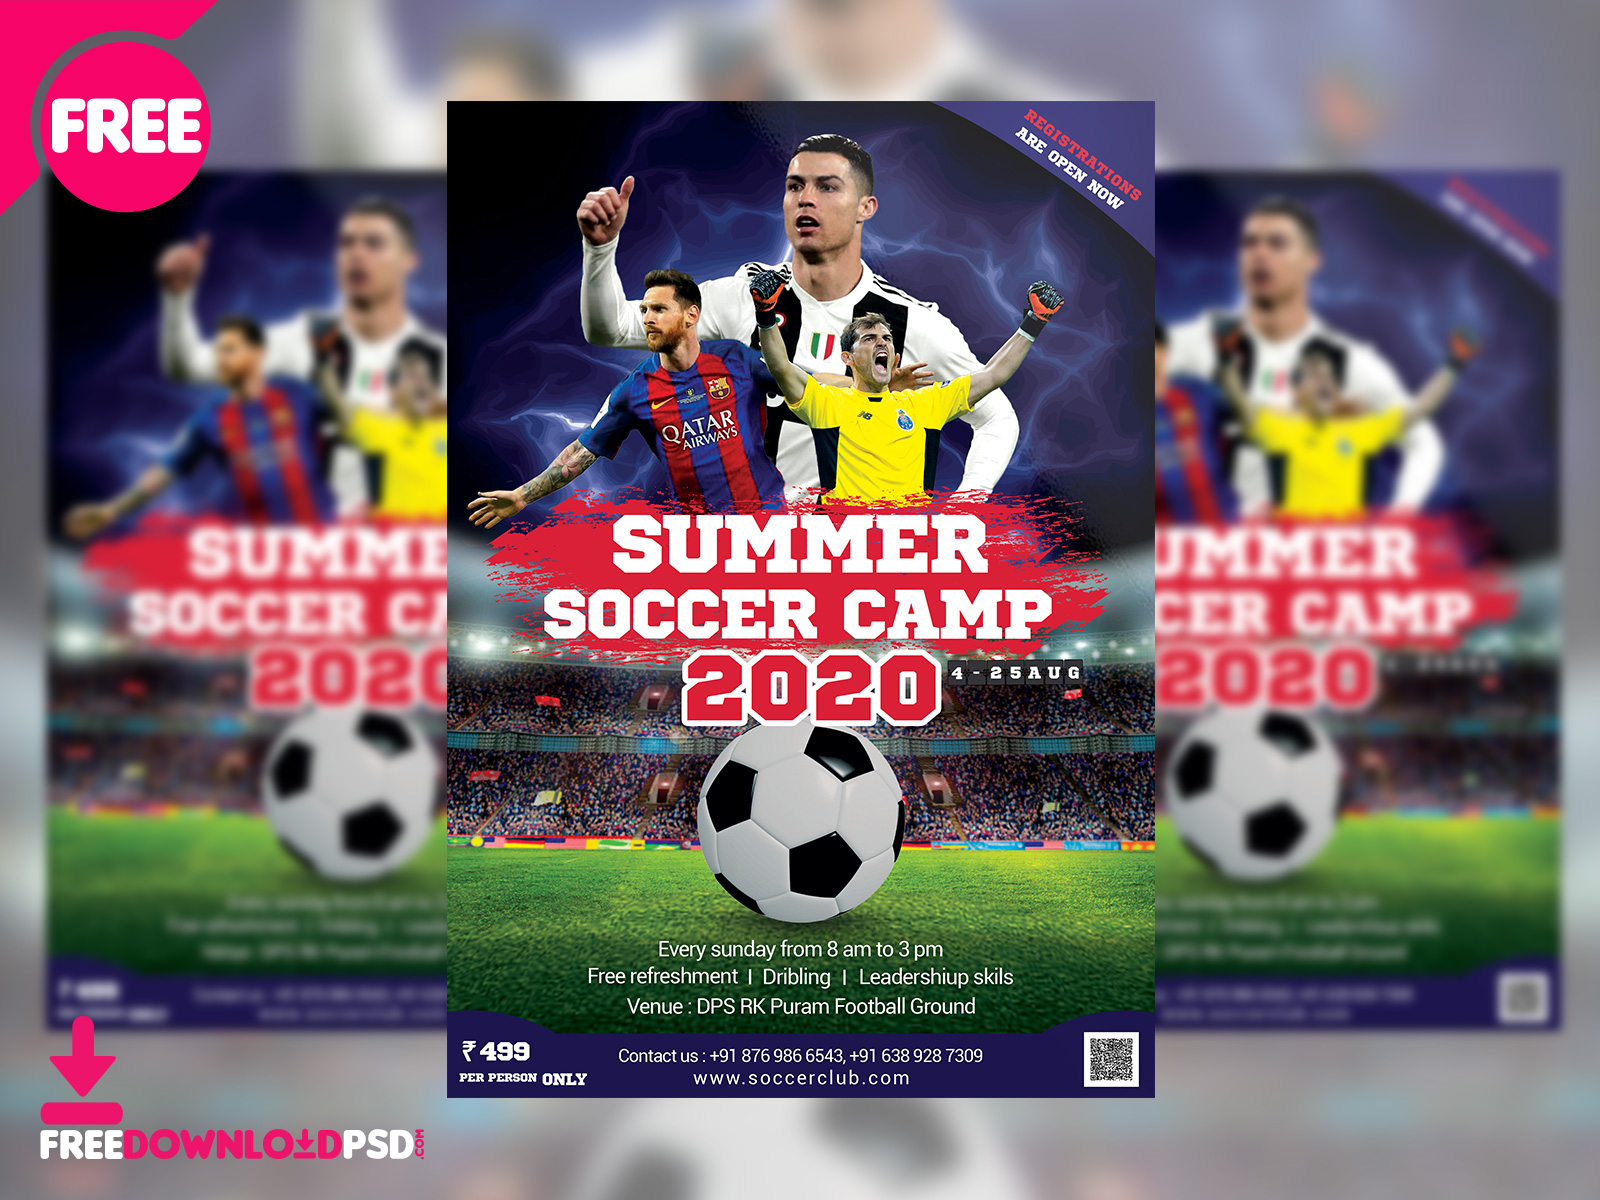 Soccer Camps Summer 2020.Summer Soccer Camp Flyer Free Psd By Pixelsquad On Dribbble